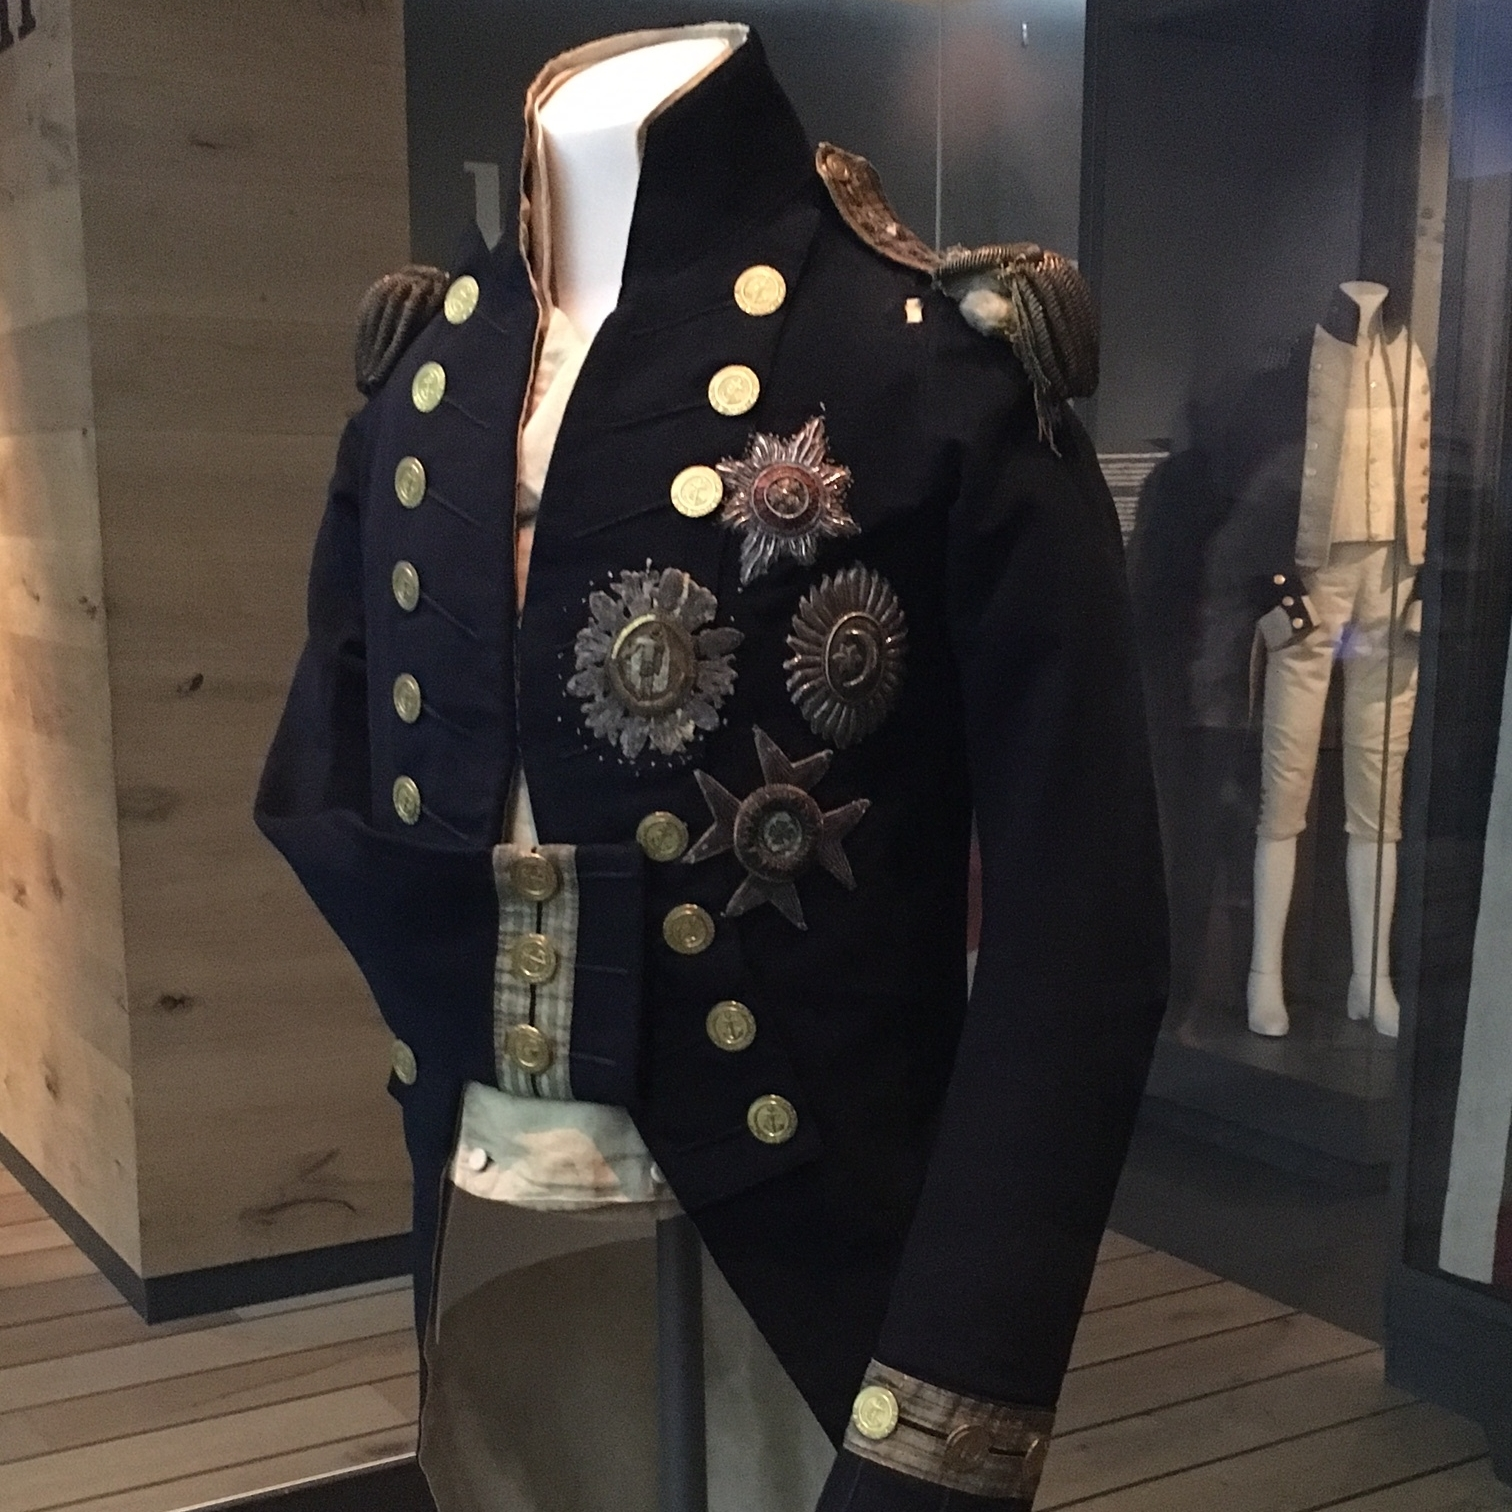 Nelson's coat, Greenwich by The Doubtful Traveller